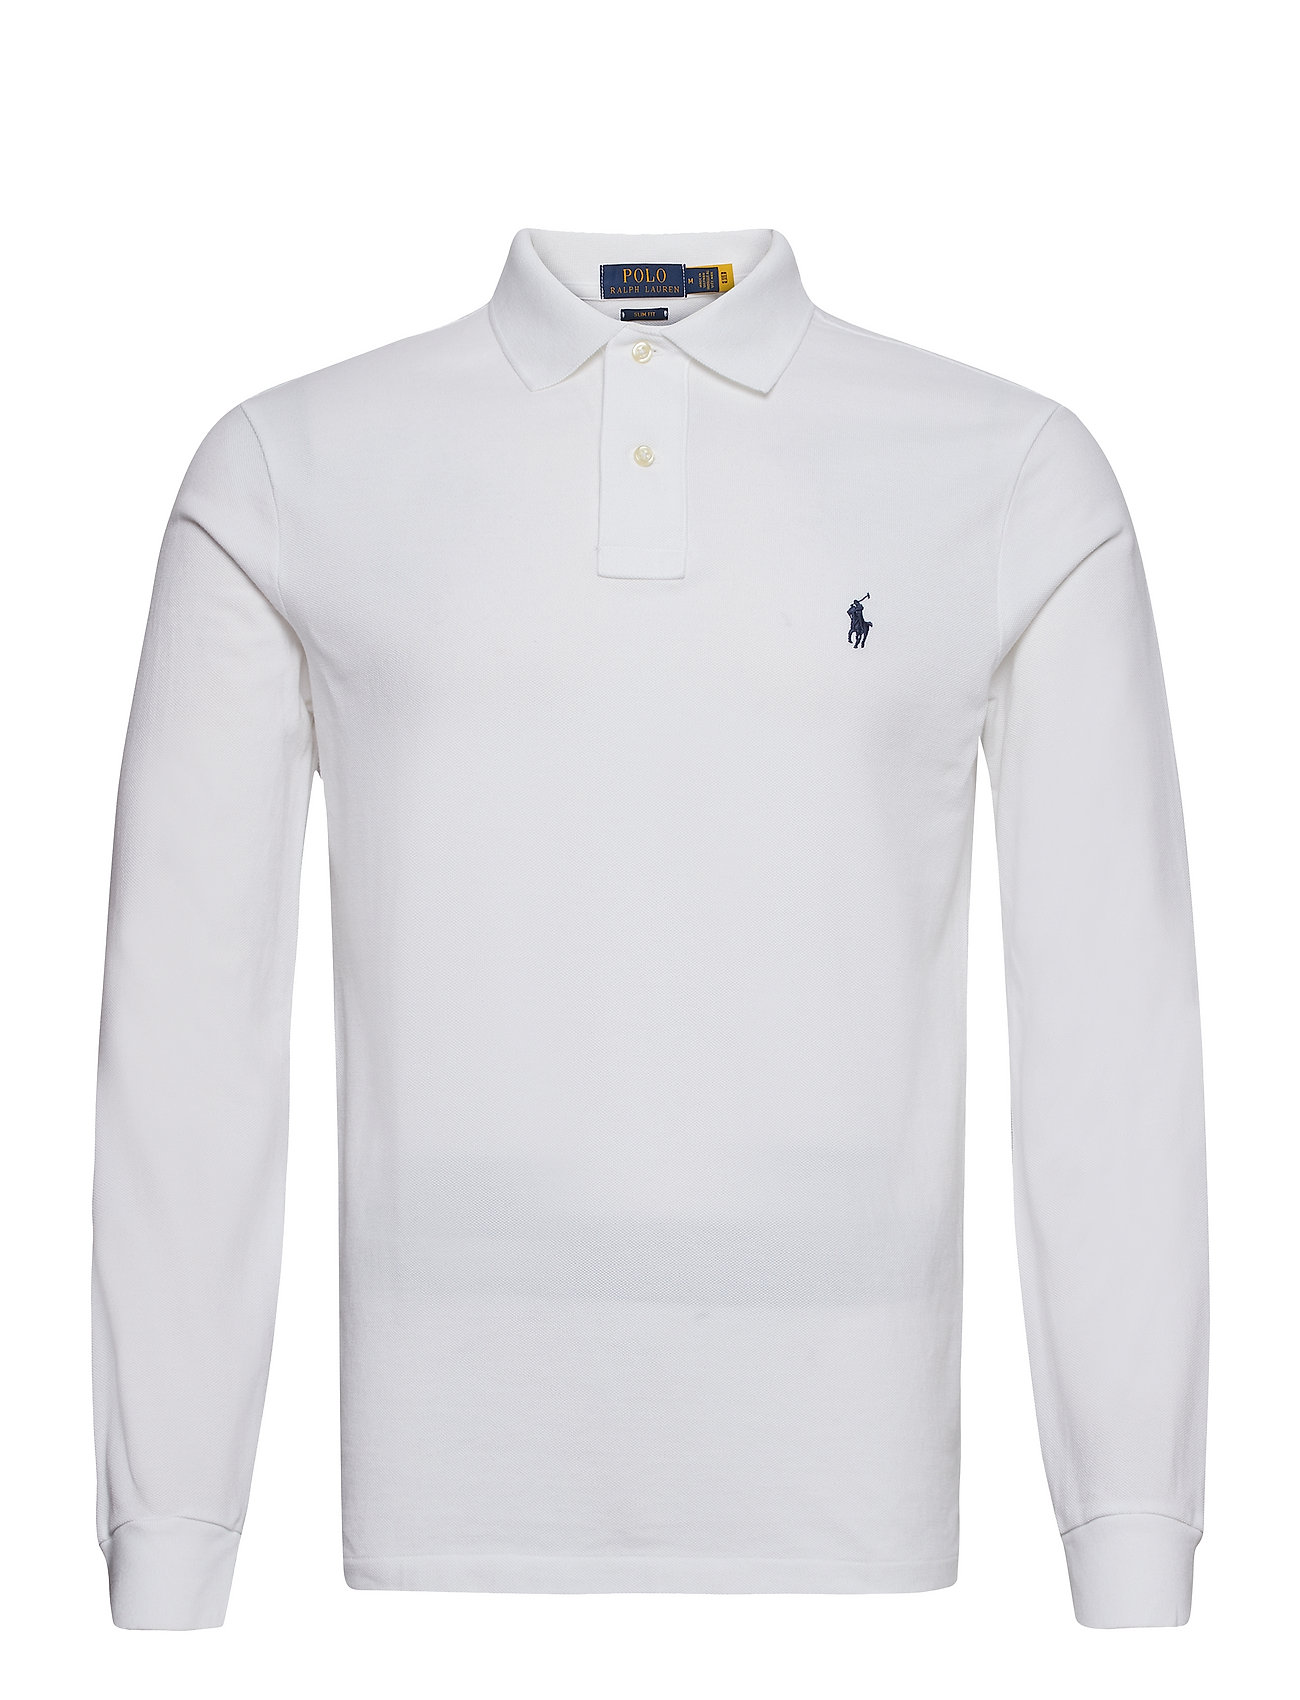 Slim Fit Mesh Long Sleeve Polo White 85 Polo Ralph Lauren